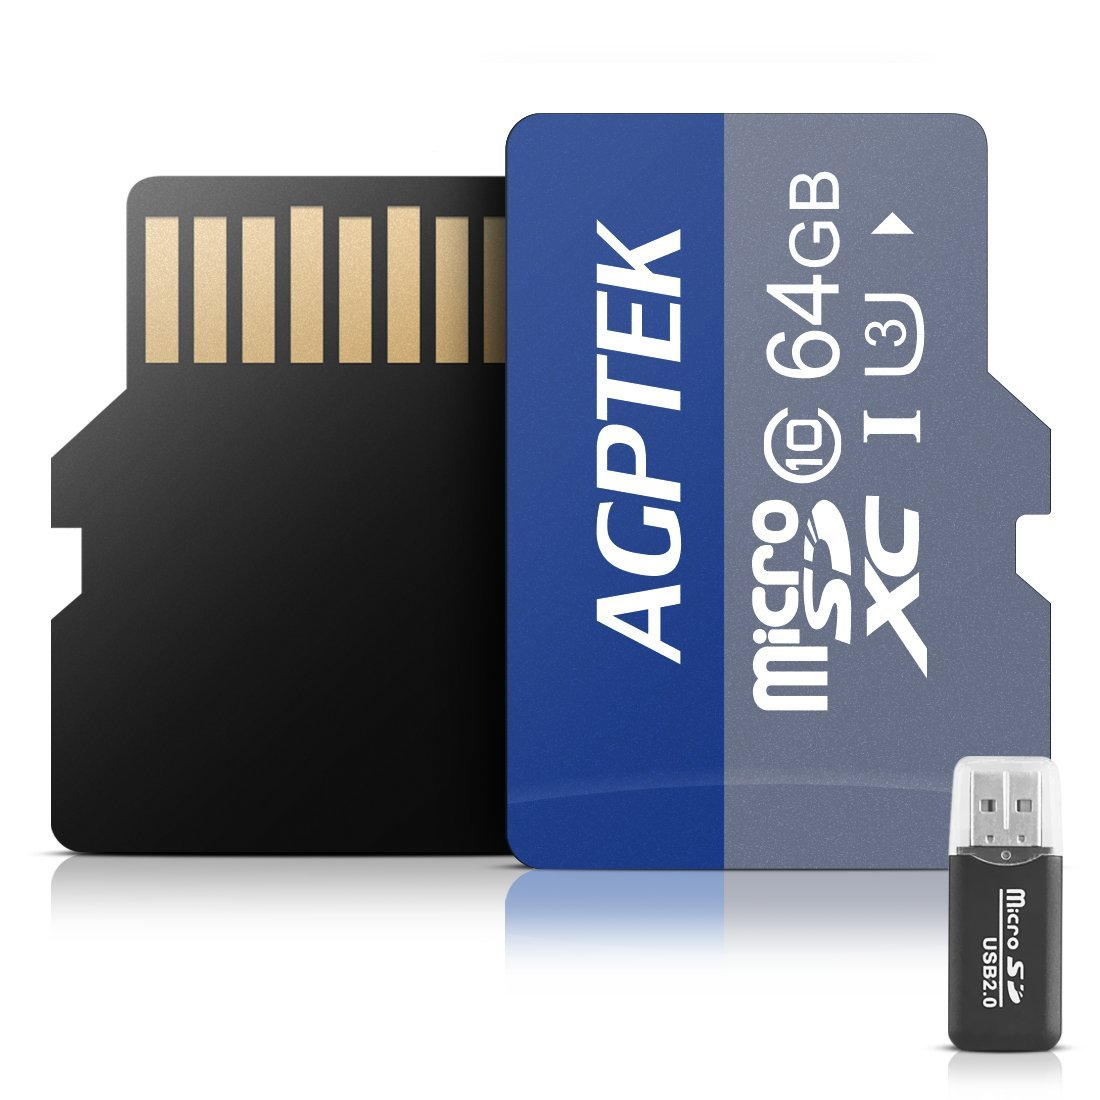 AGPTEK 64GB Class 10 Micro SD Card with Card reader, Compatible with AGPTEK Mp3 player by AGPTEK